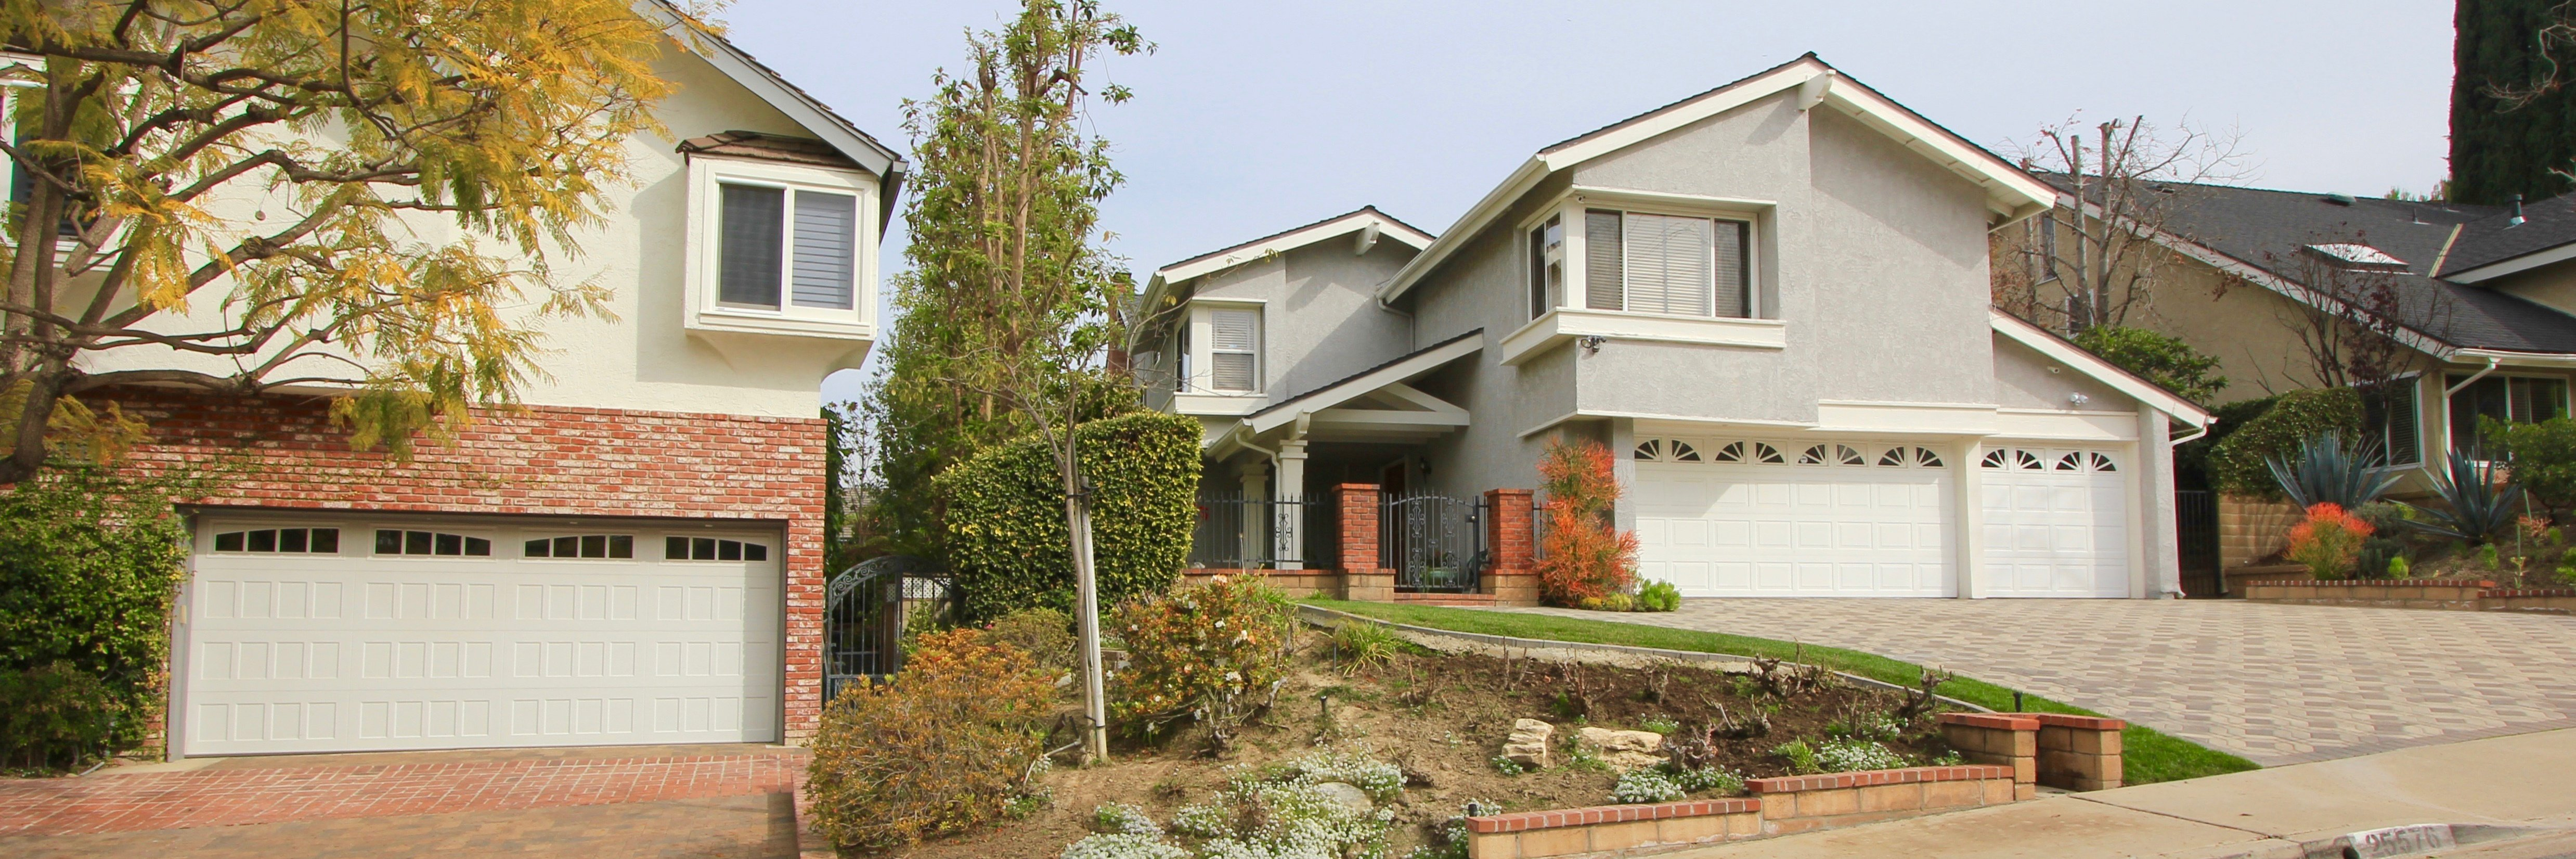 Aliso Place is a home community in Laguna Hills CA